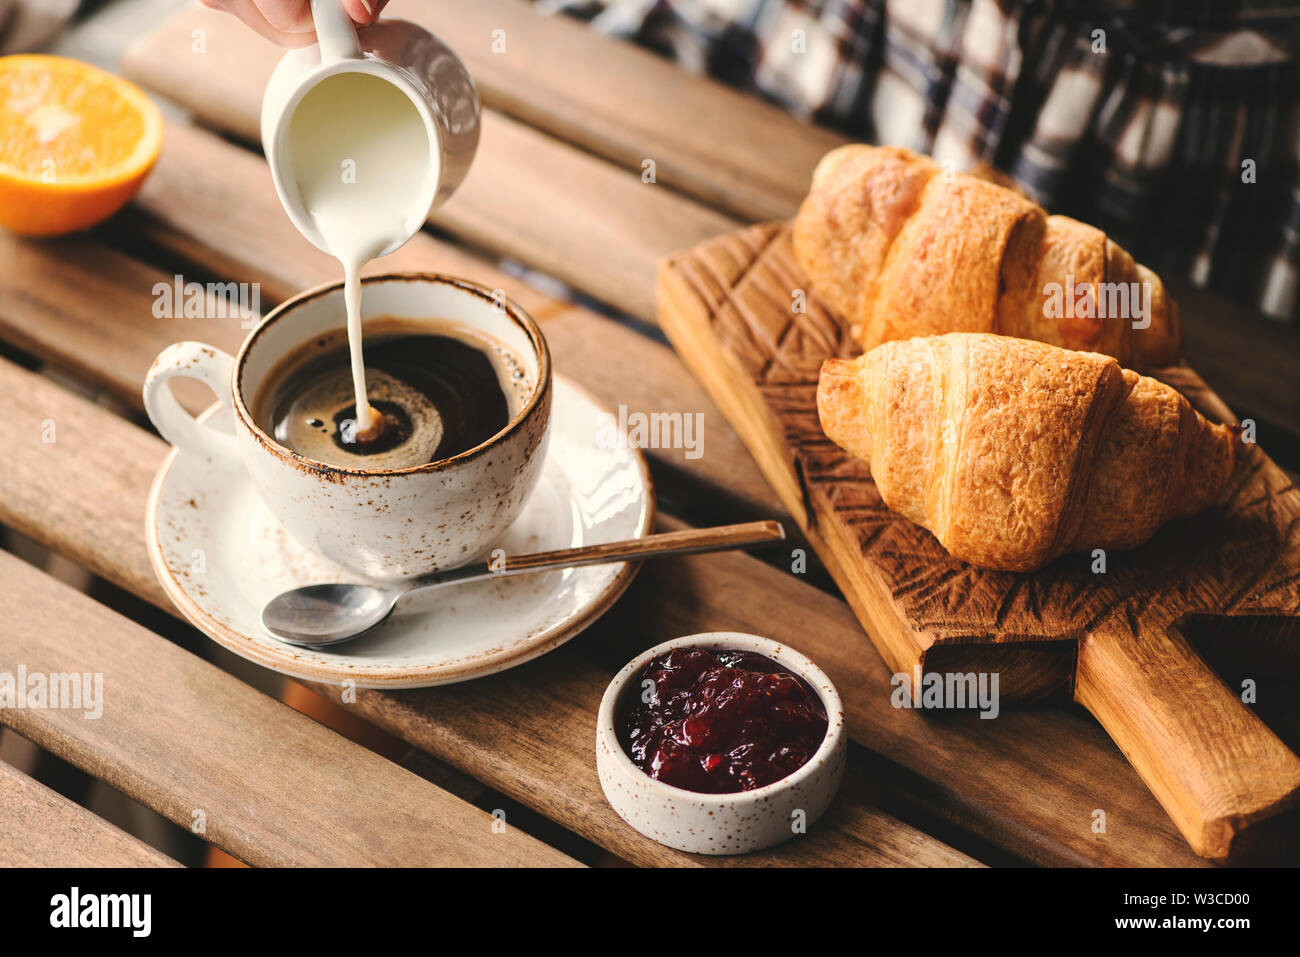 Pouring Cream Into Cup Of Black Coffee Tasty Breakfast Table Set With Croissants Jam And Coffee Stock Photo Alamy